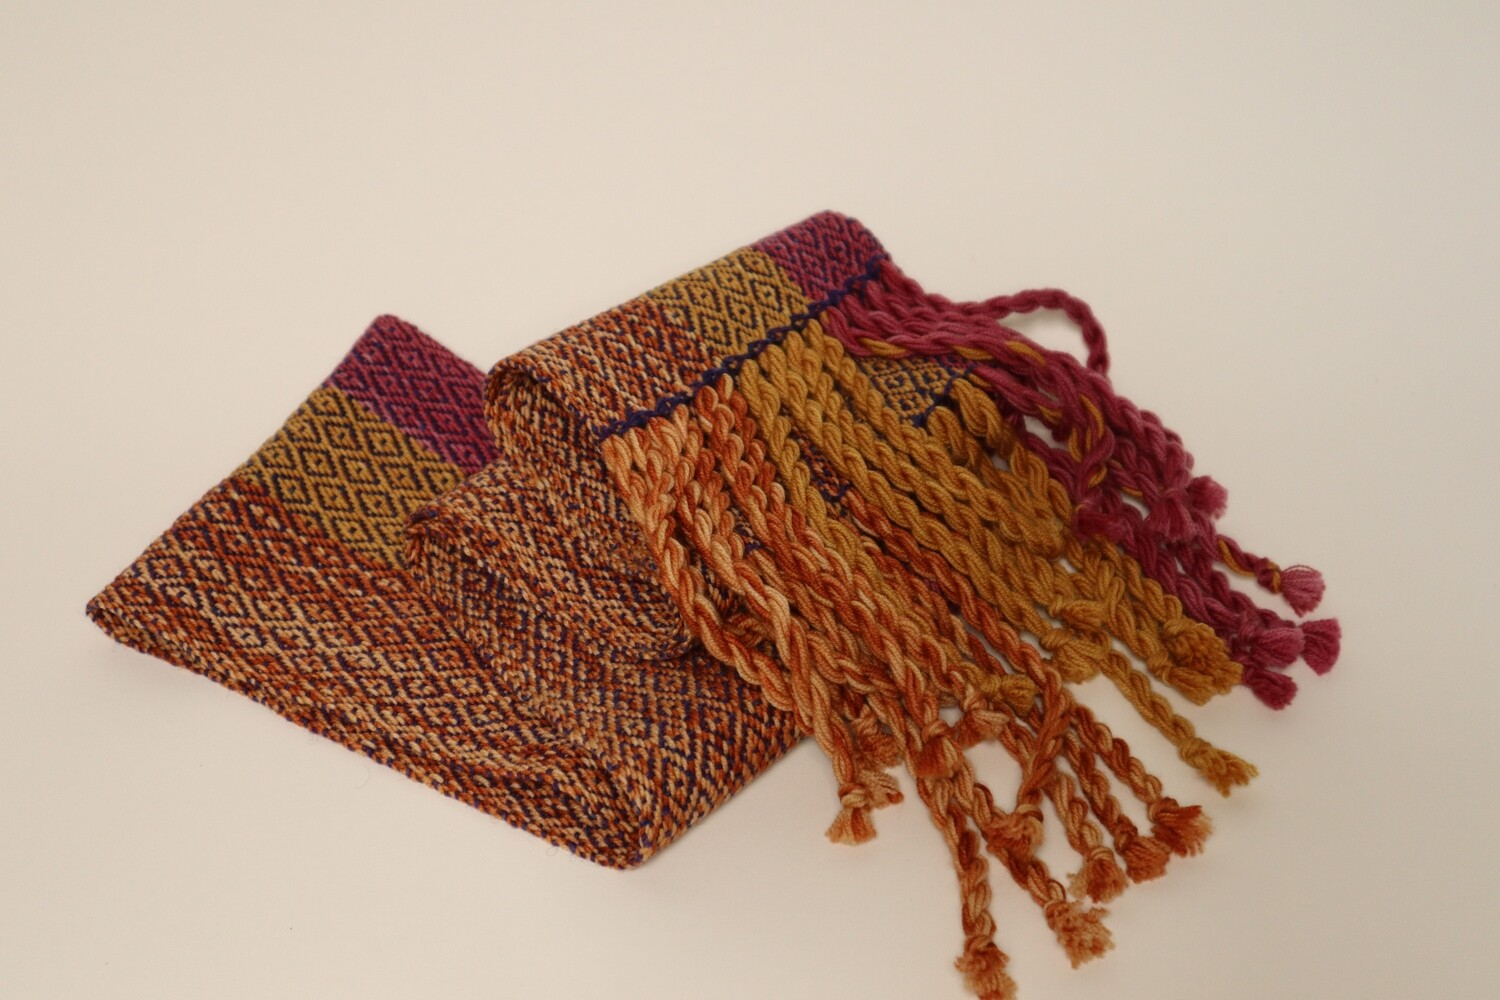 Cochineal and osage orange dyed scarf